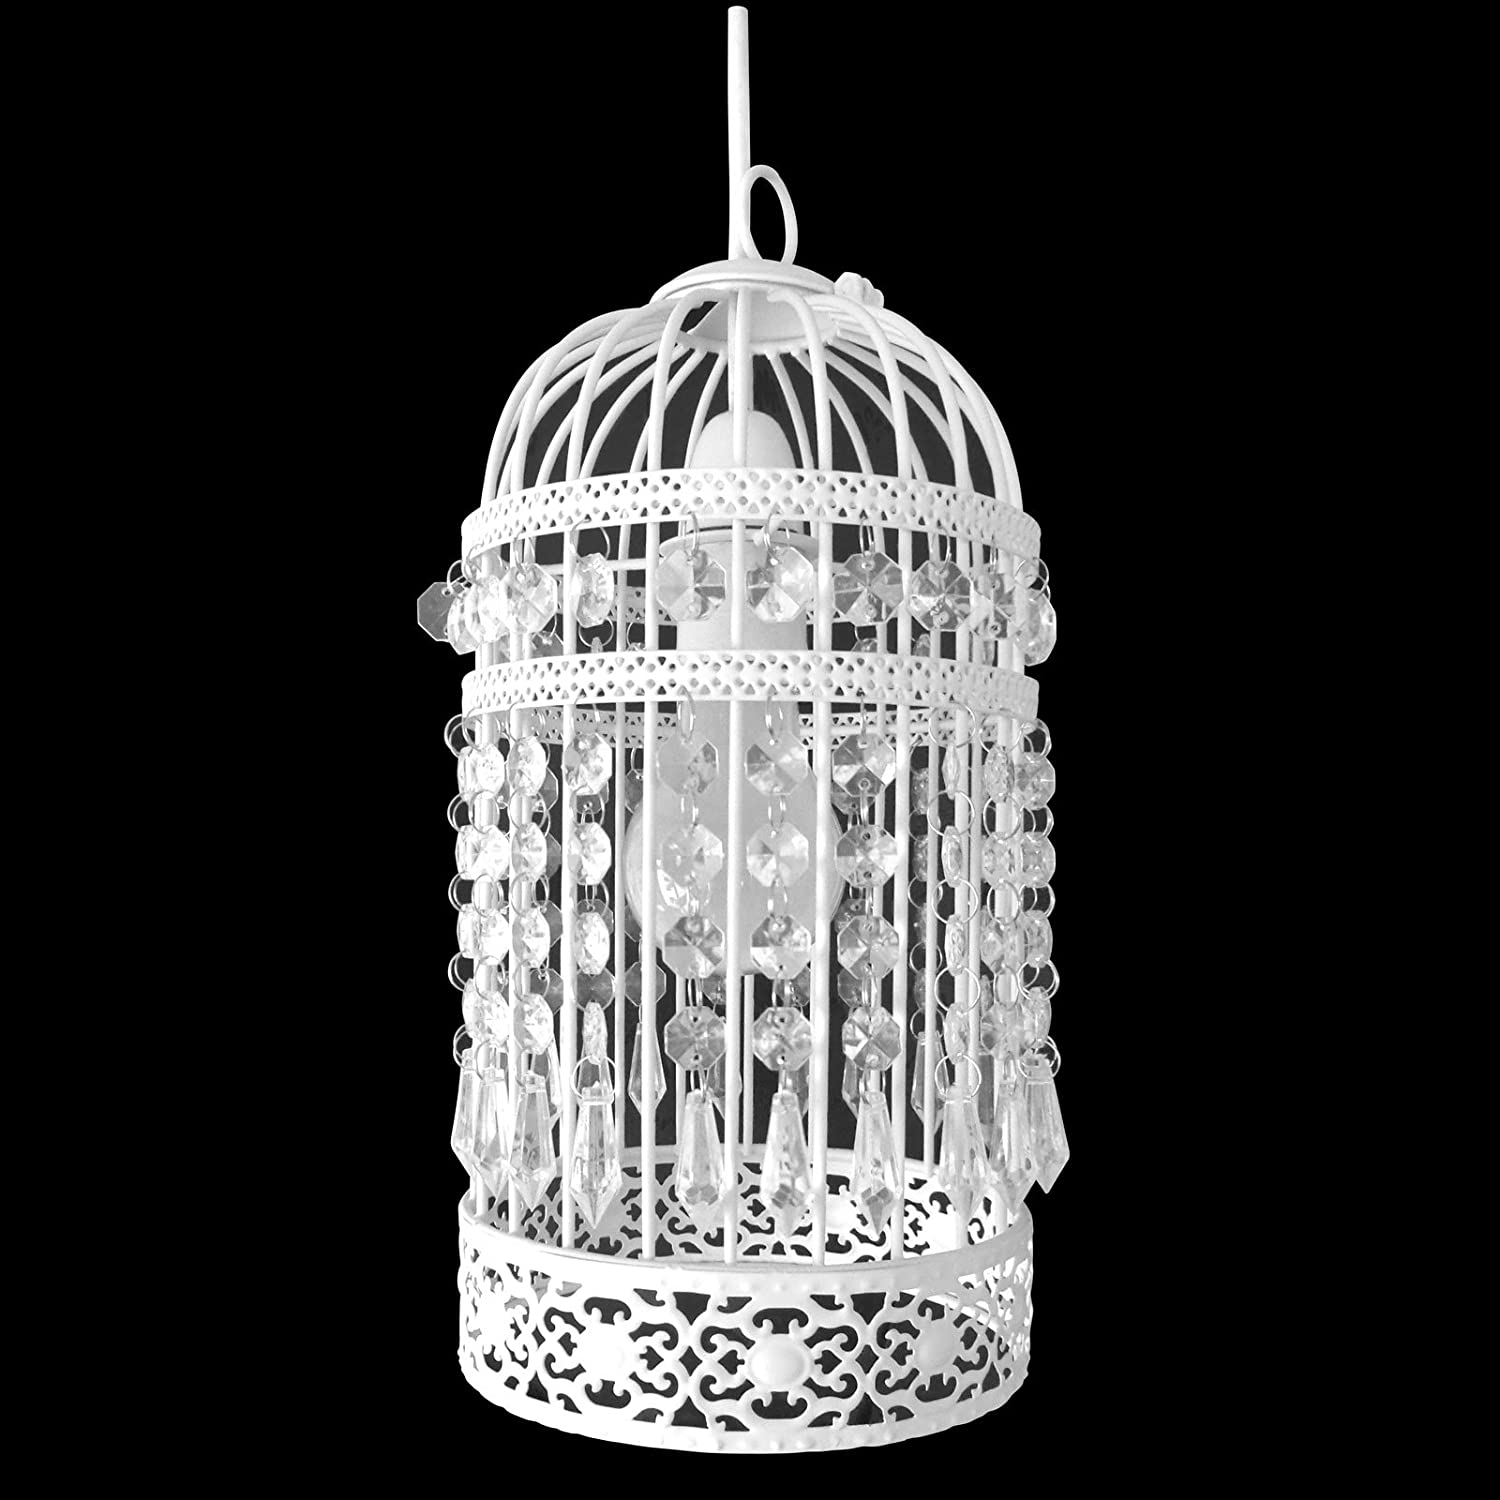 Antique style birdcage bird cage ceiling pendant light shade fitting antique style birdcage bird cage ceiling pendant light shade fitting decoration amazon kitchen home aloadofball Image collections